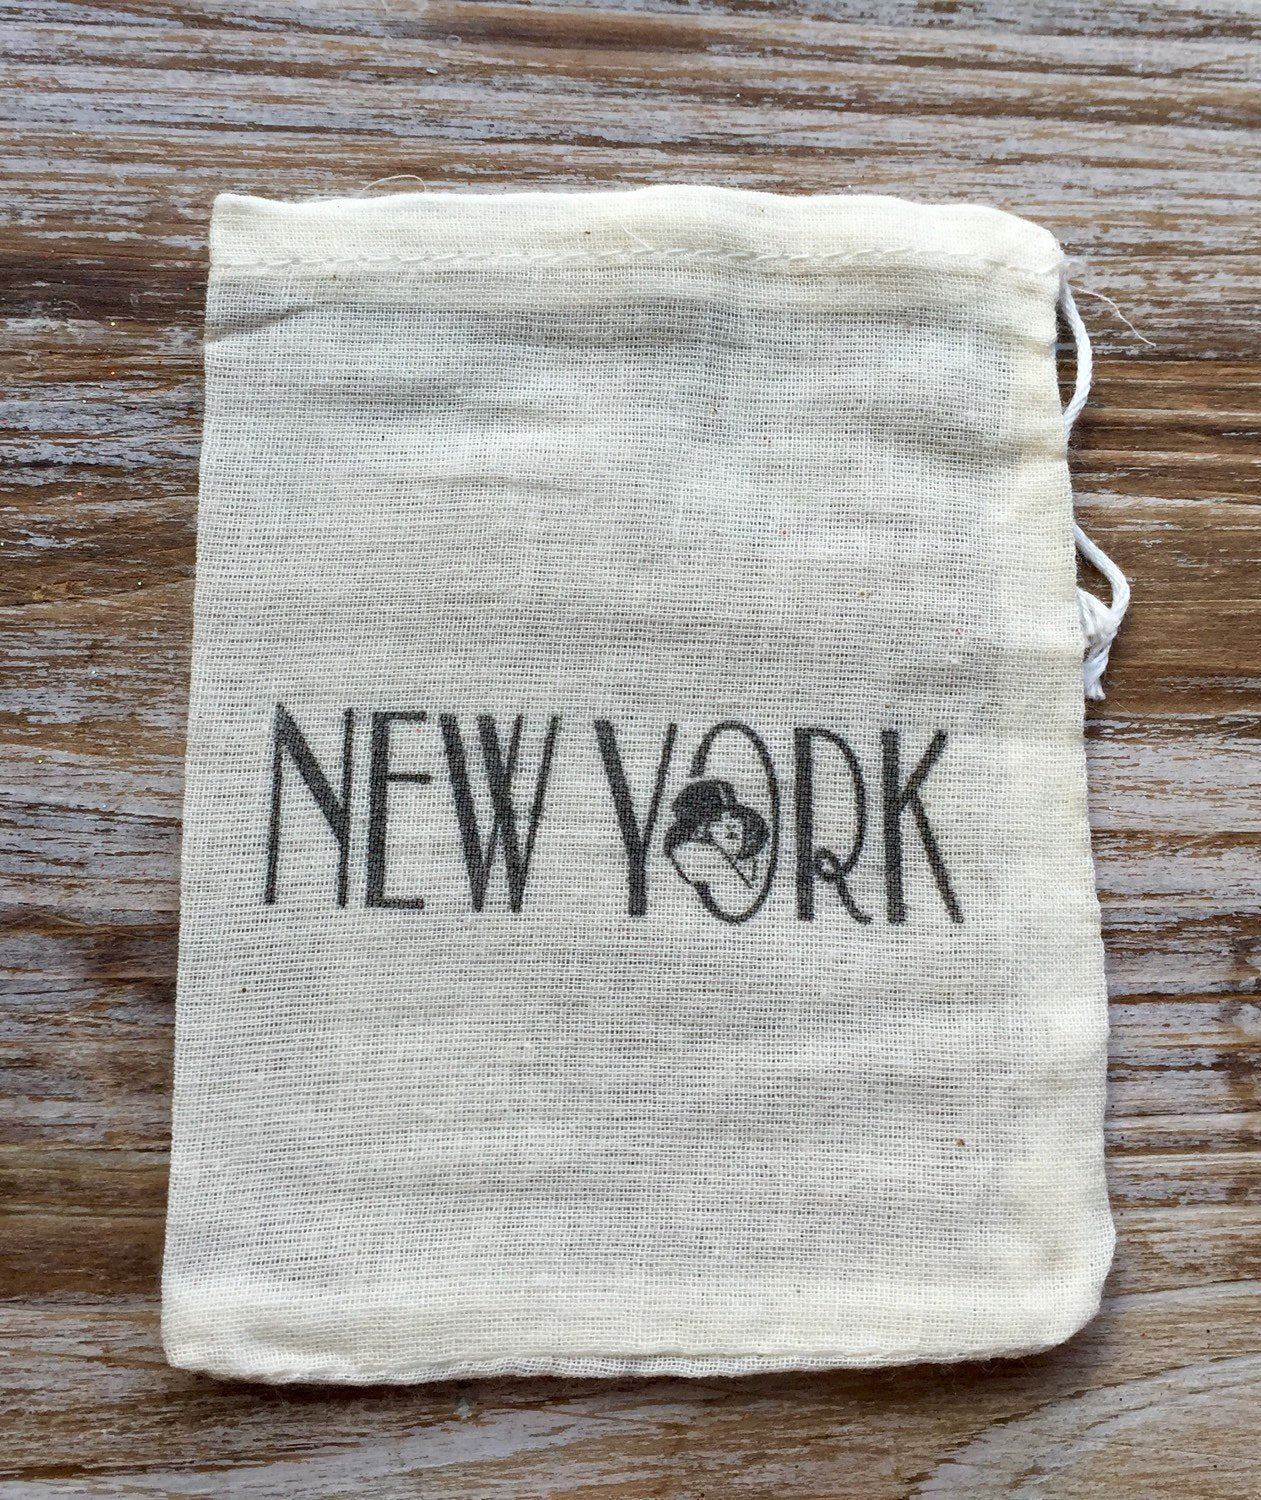 10 New York favor bags, Broadway favor bags, New York themed parrty, New York wedding